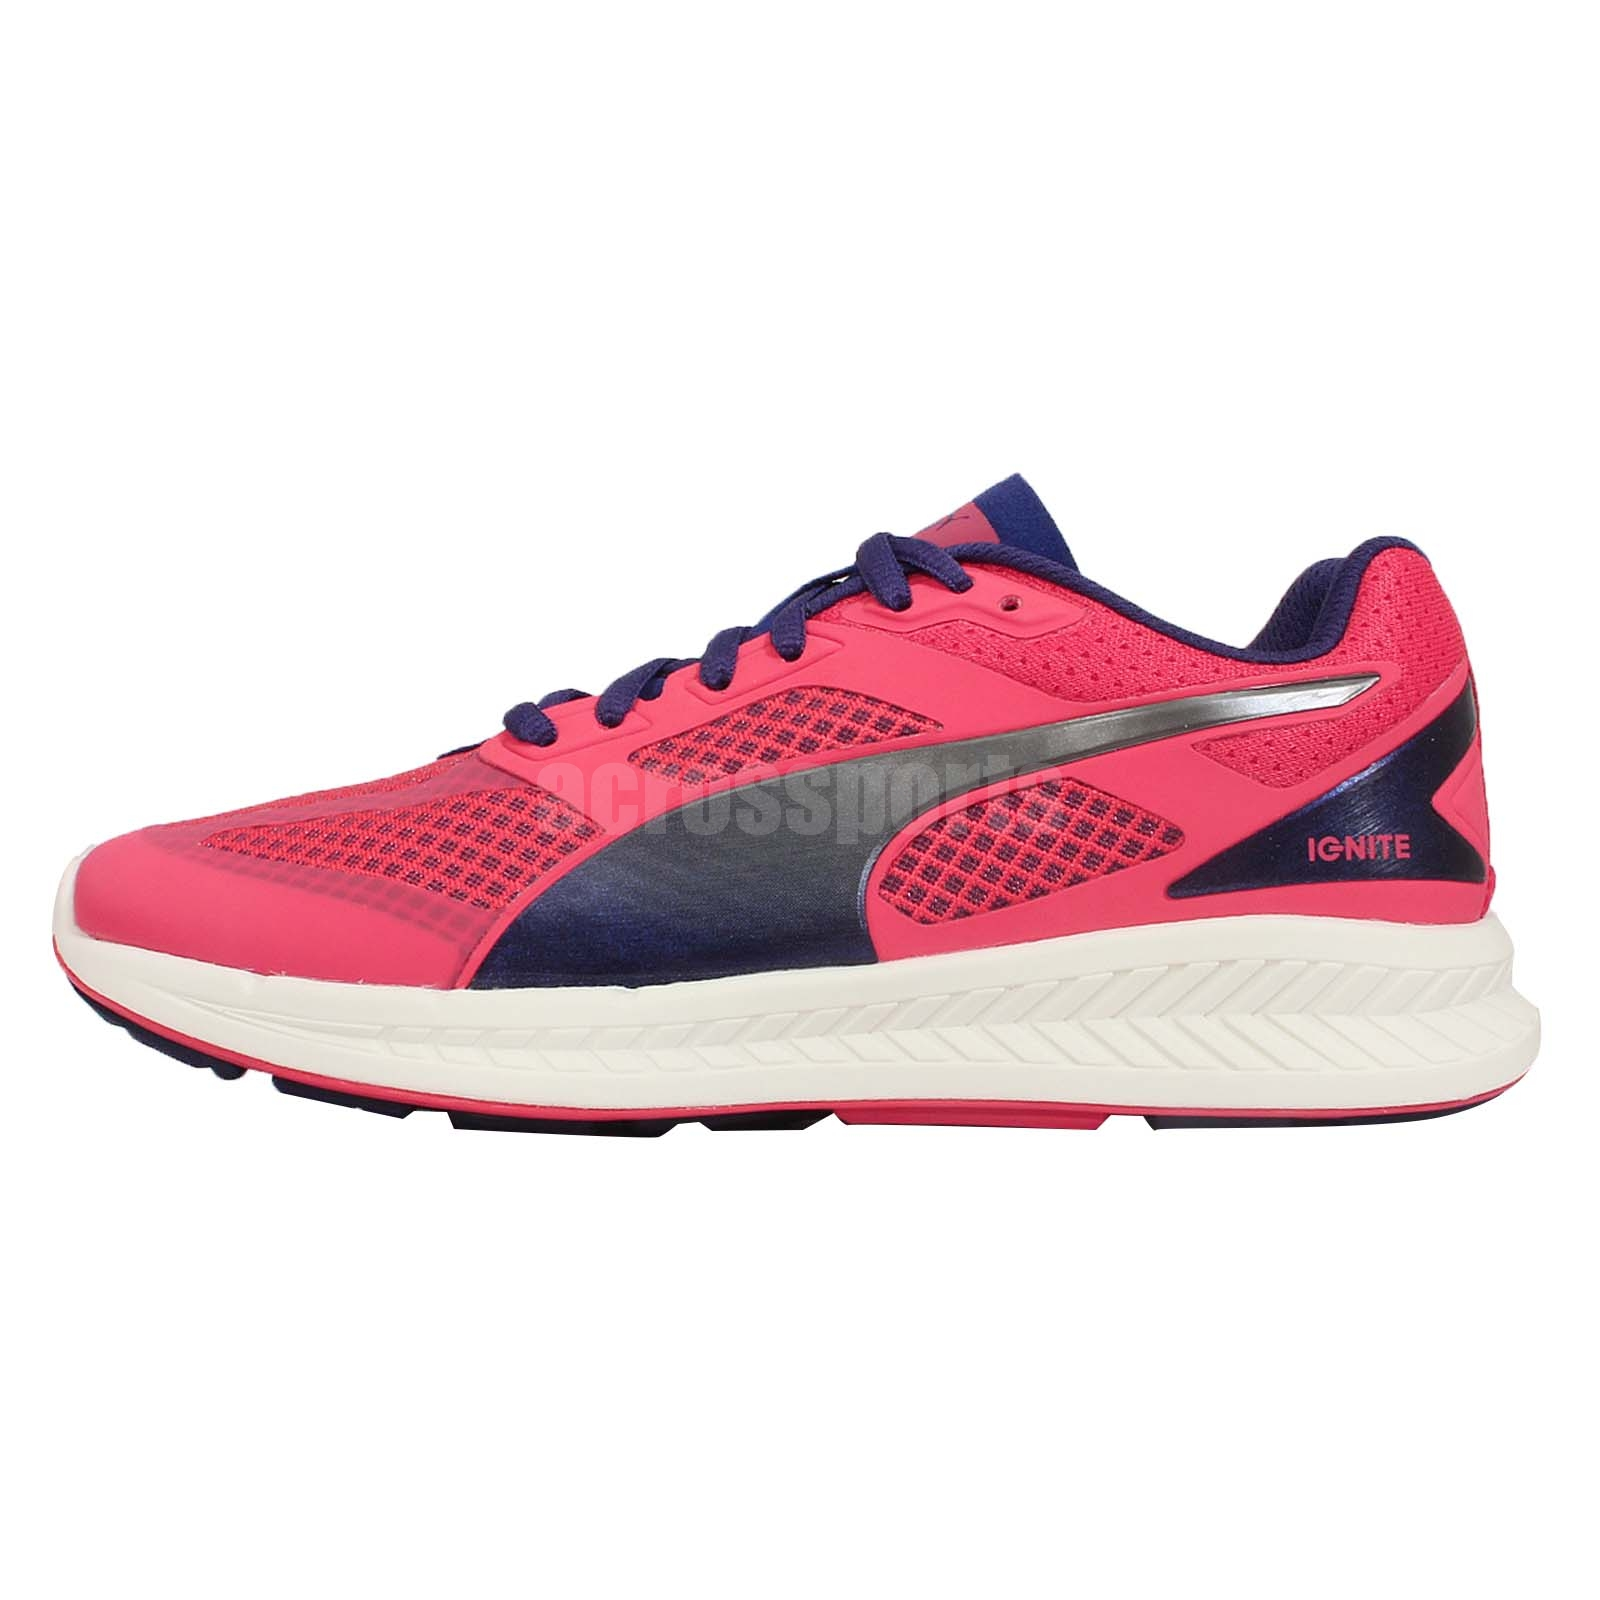 ignite mesh wns pink blue womens racing running shoes